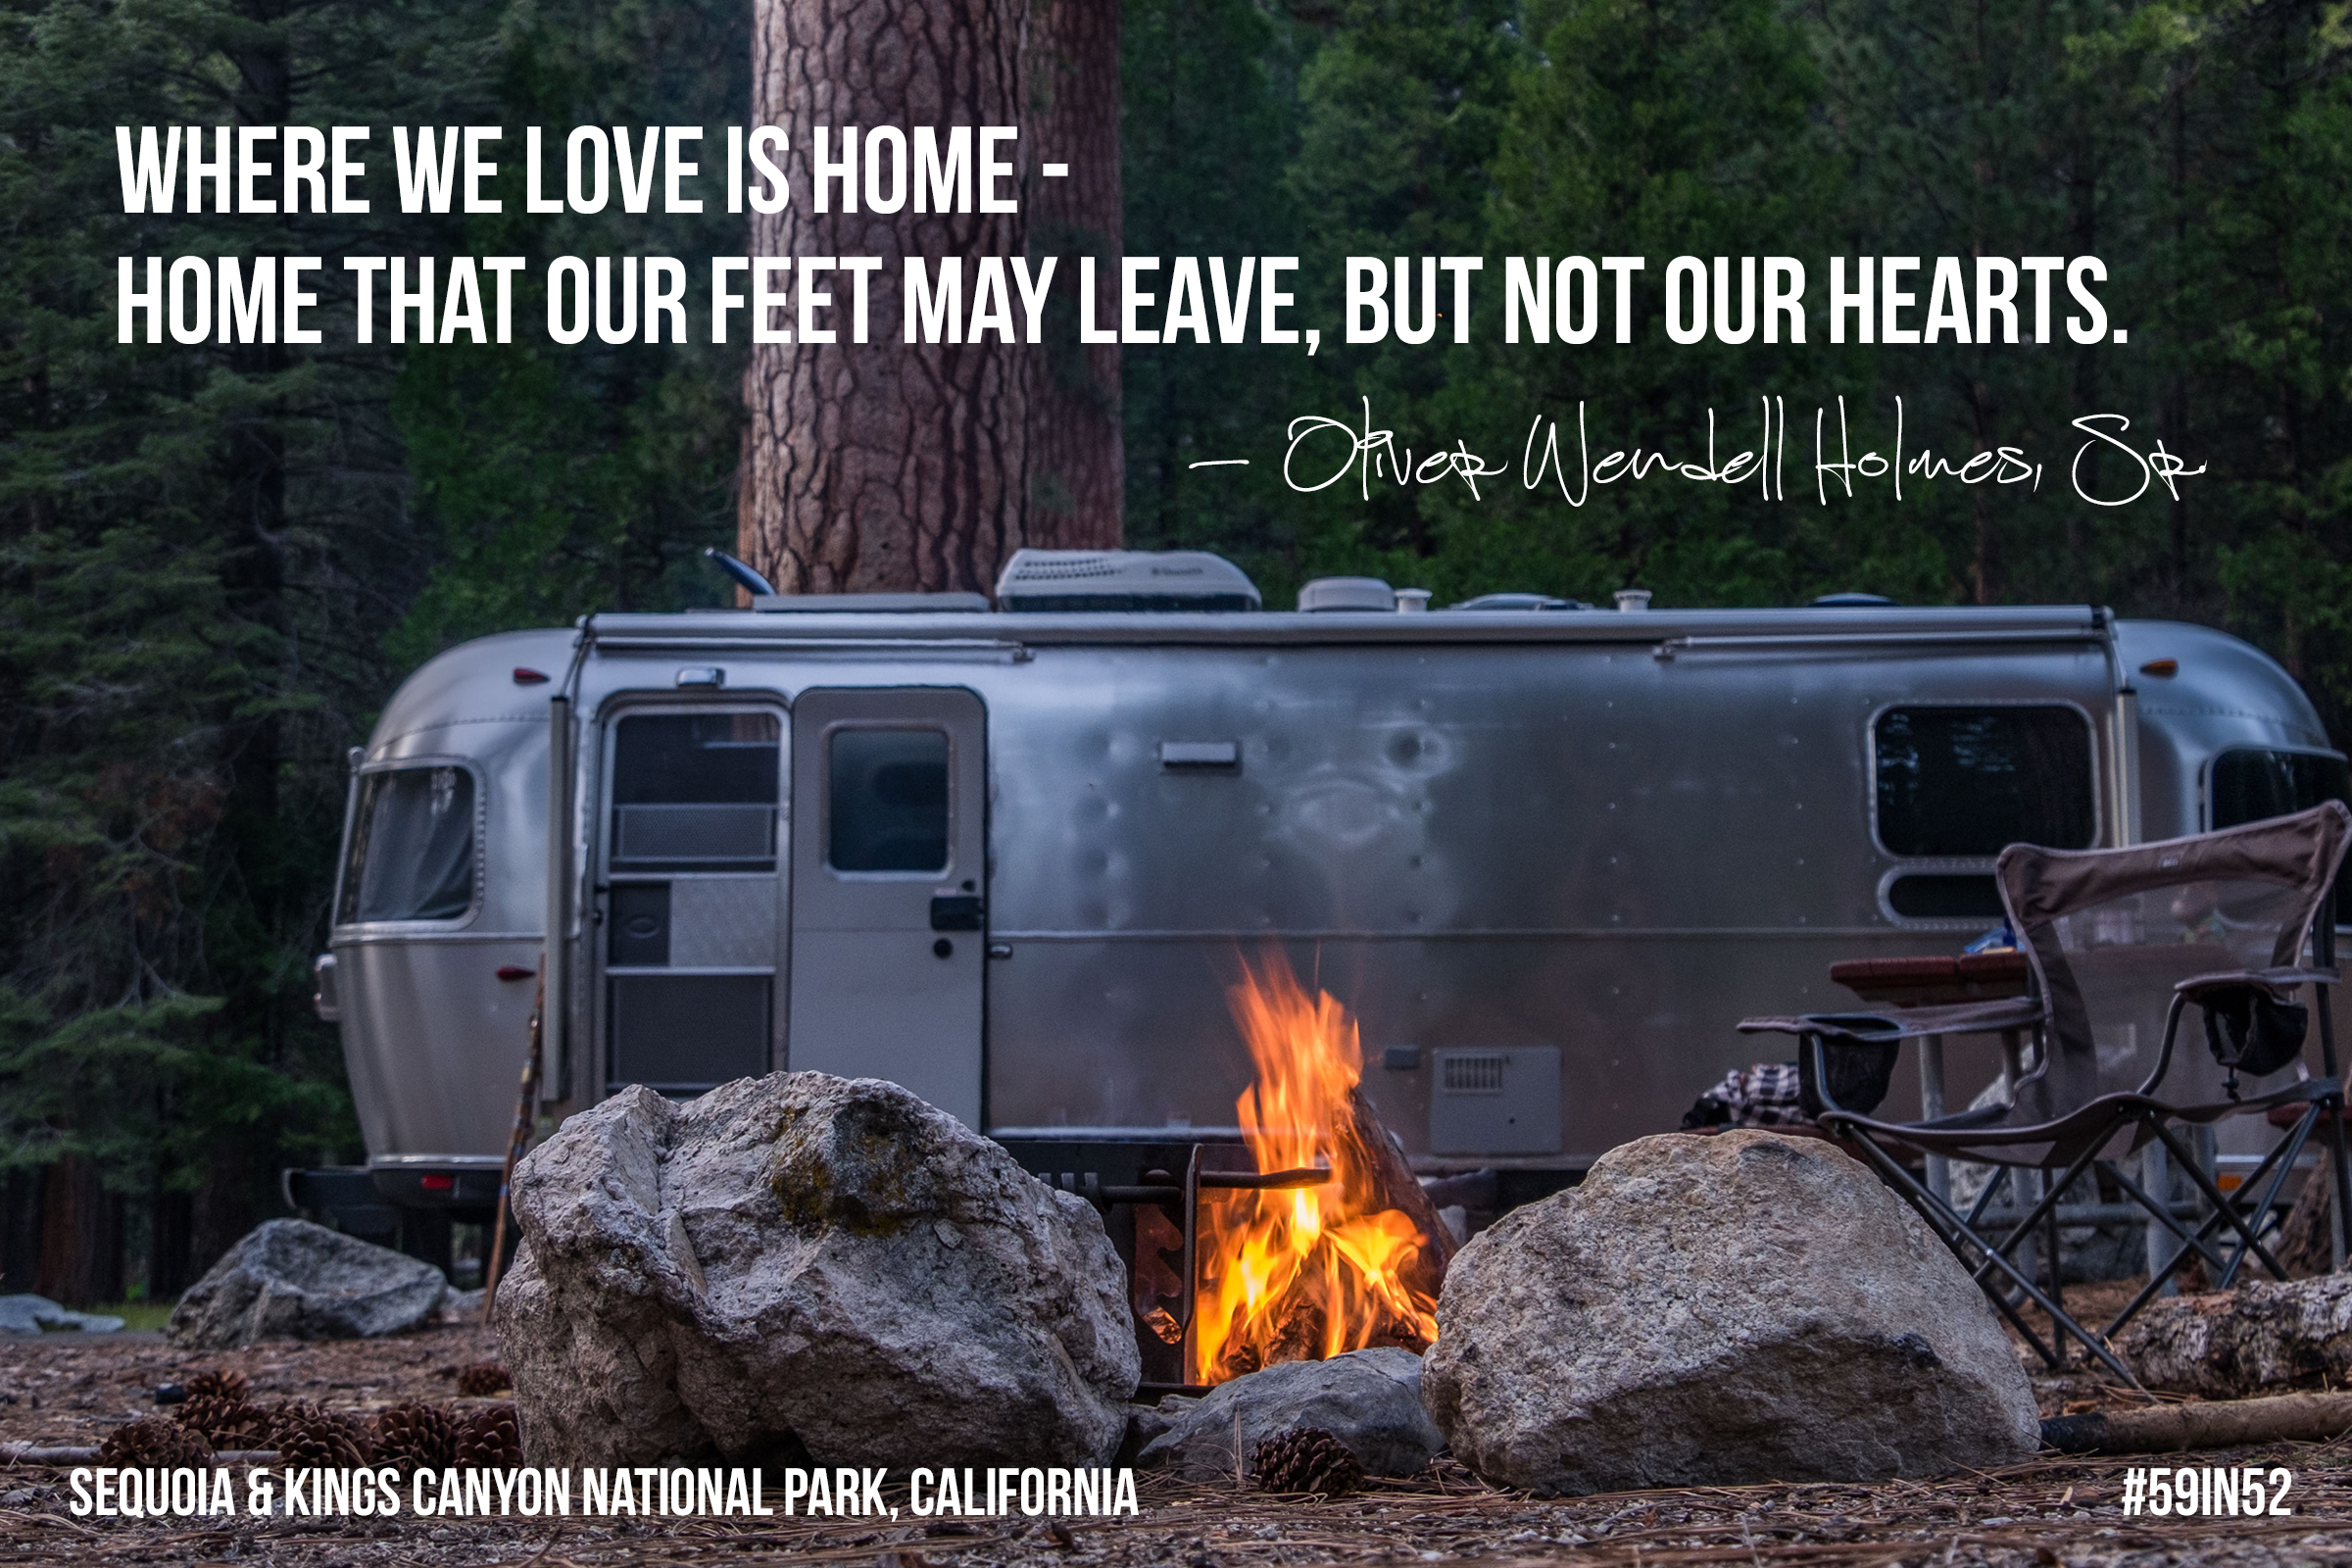 """Where we love is home - home that our feet may leave but not our hearts."" – Oliver Wendell Holmes, Sr."